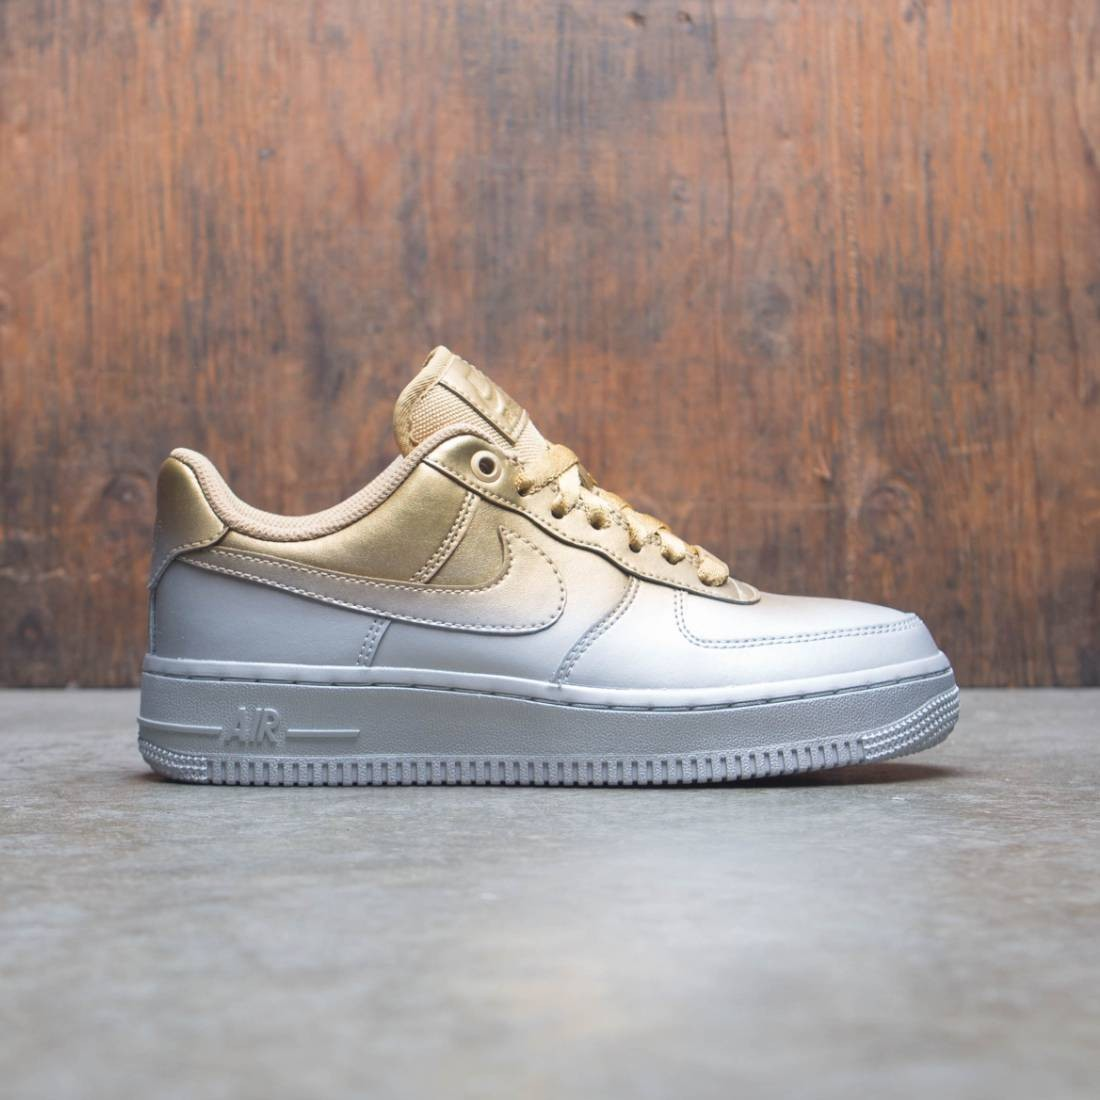 separation shoes 55f68 ac99a Nike Women Air Force 1 '07 Lux (mtlc platinum / metallic gold-flt gold)